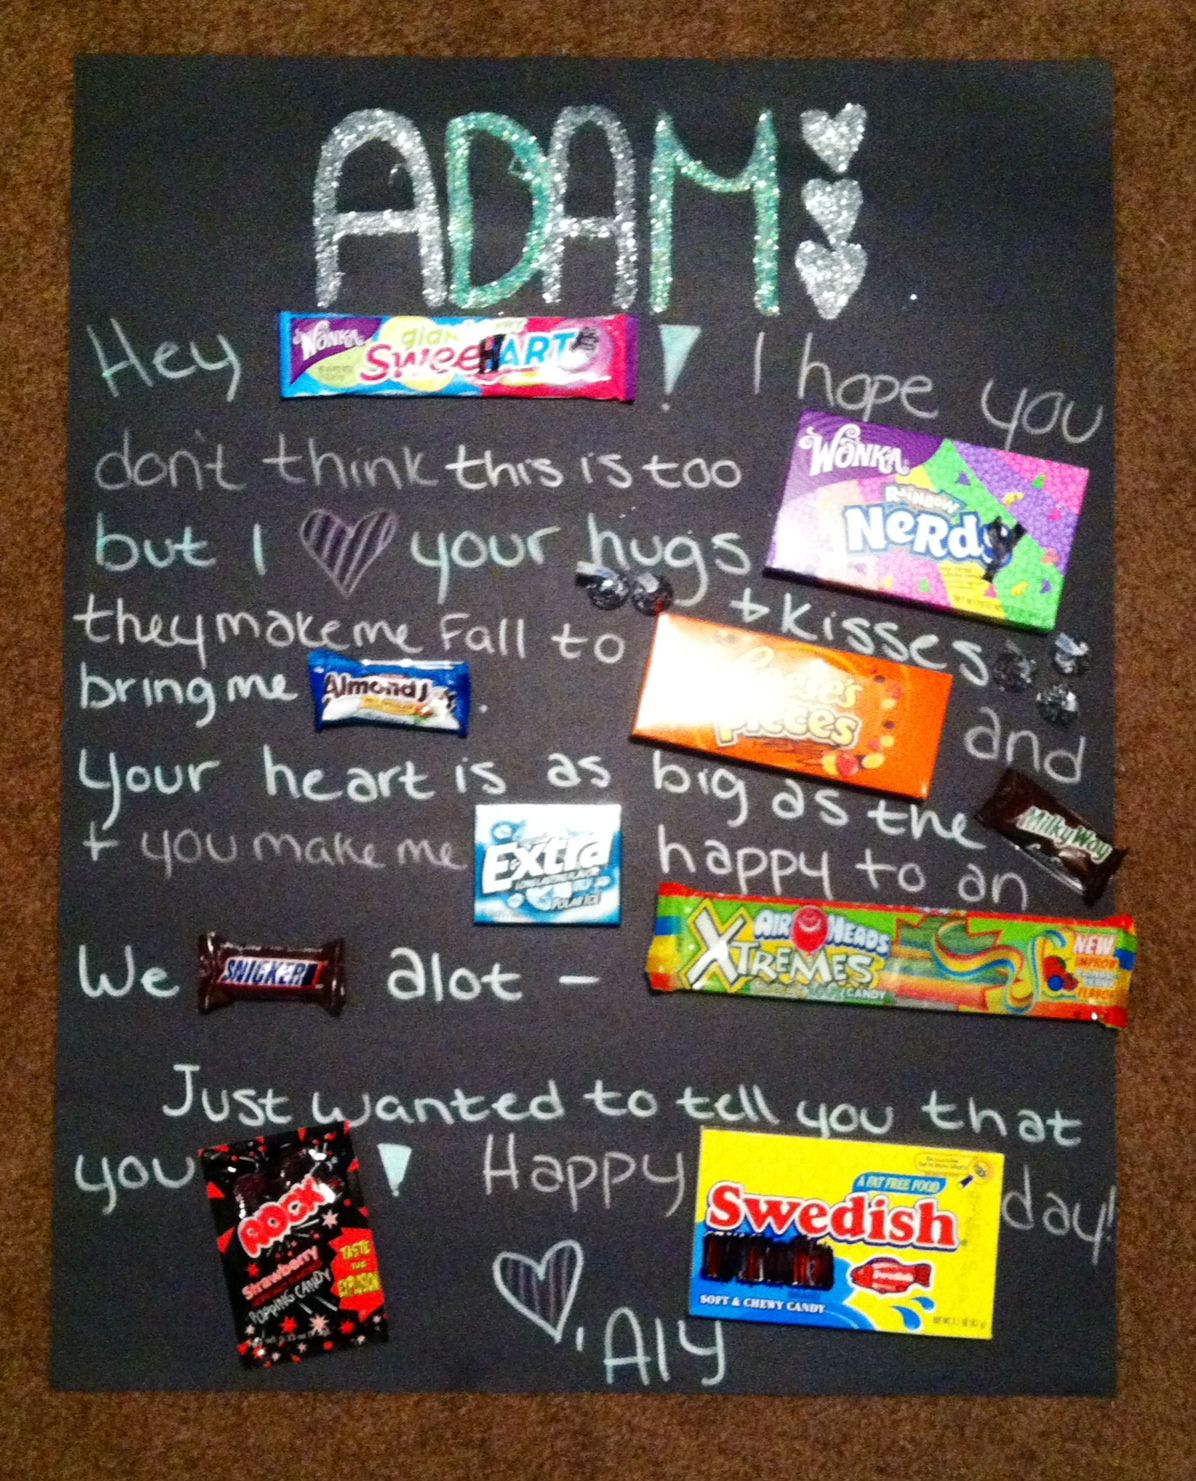 Turned Out So Cute Sweetest Day Gift Candy Poster Creative